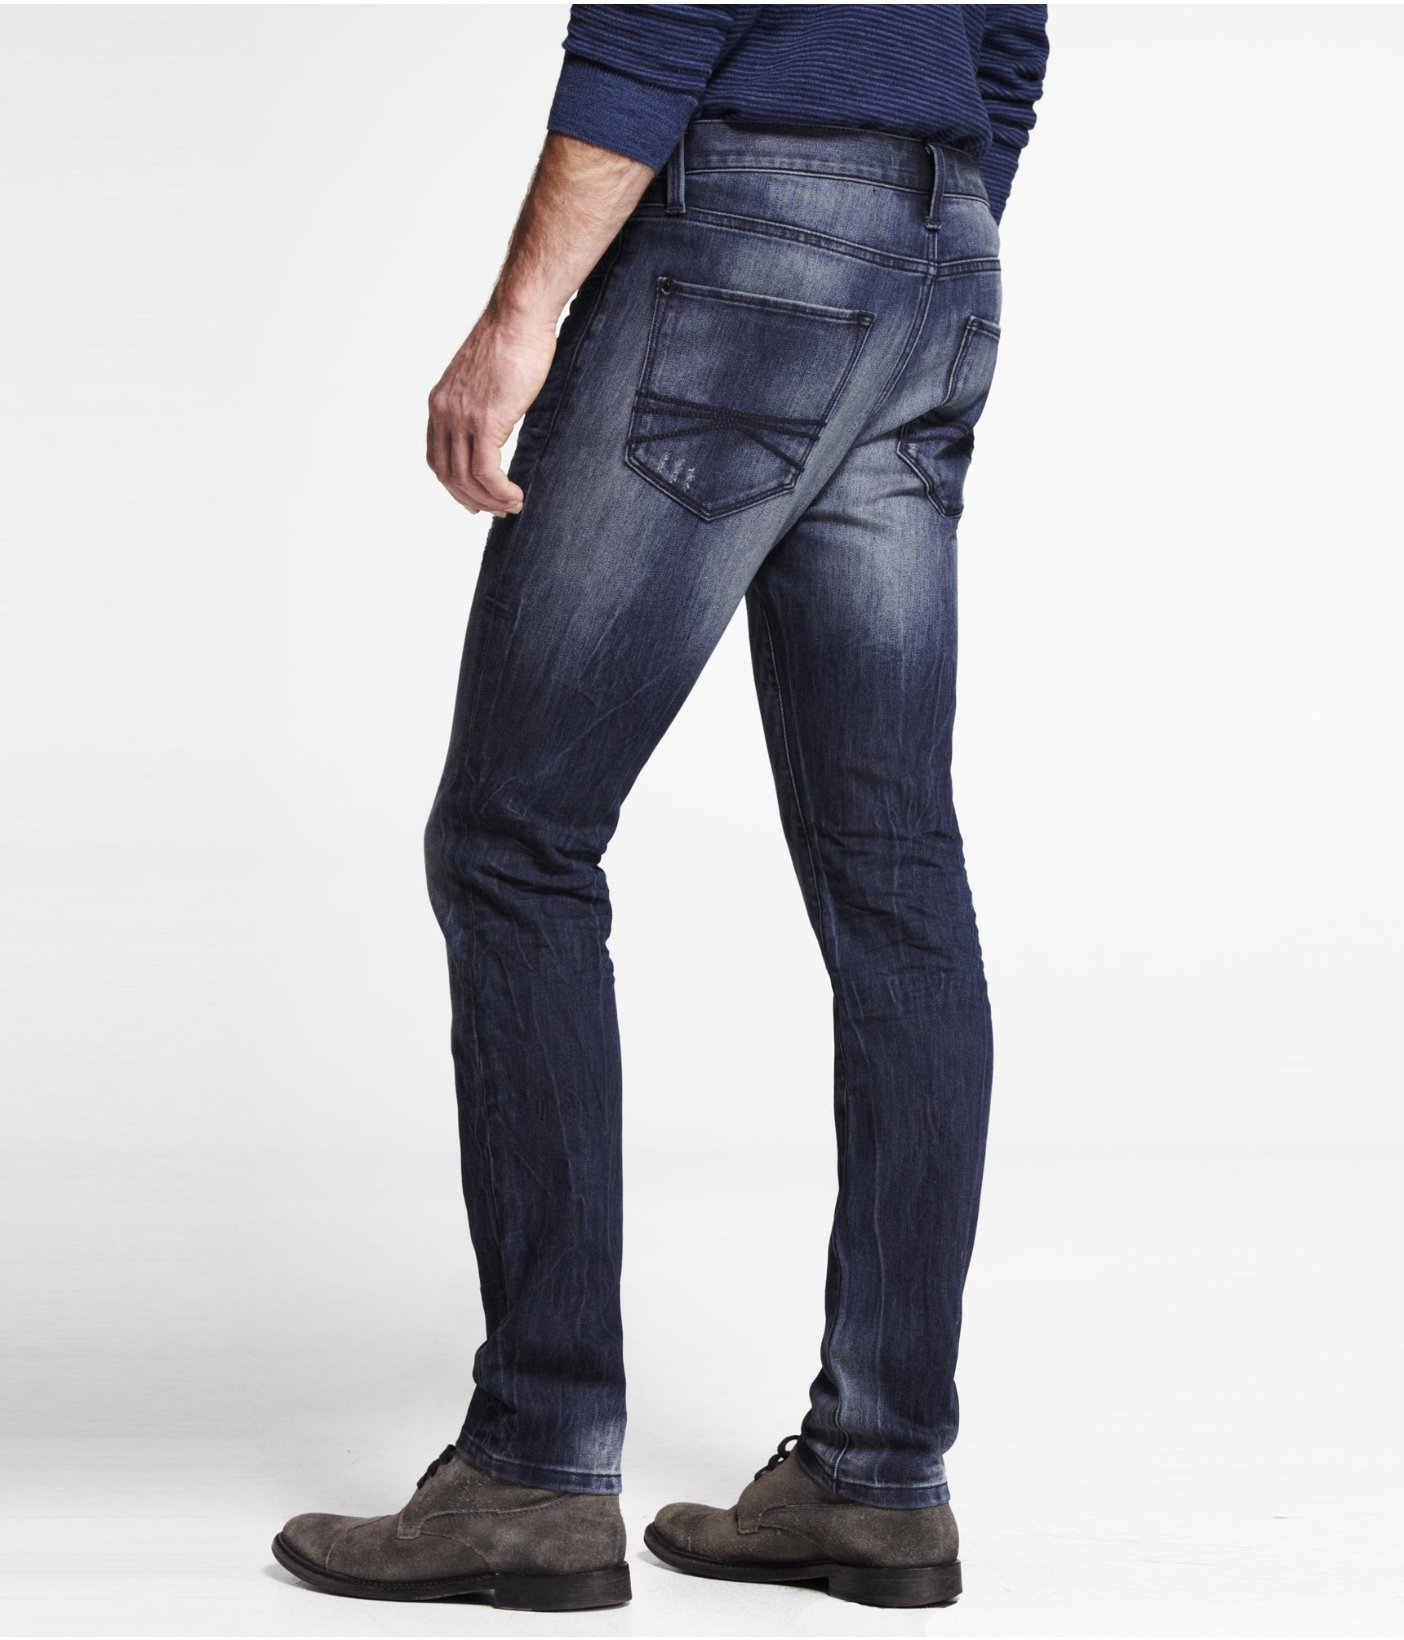 Express jeans alec super skinny fit